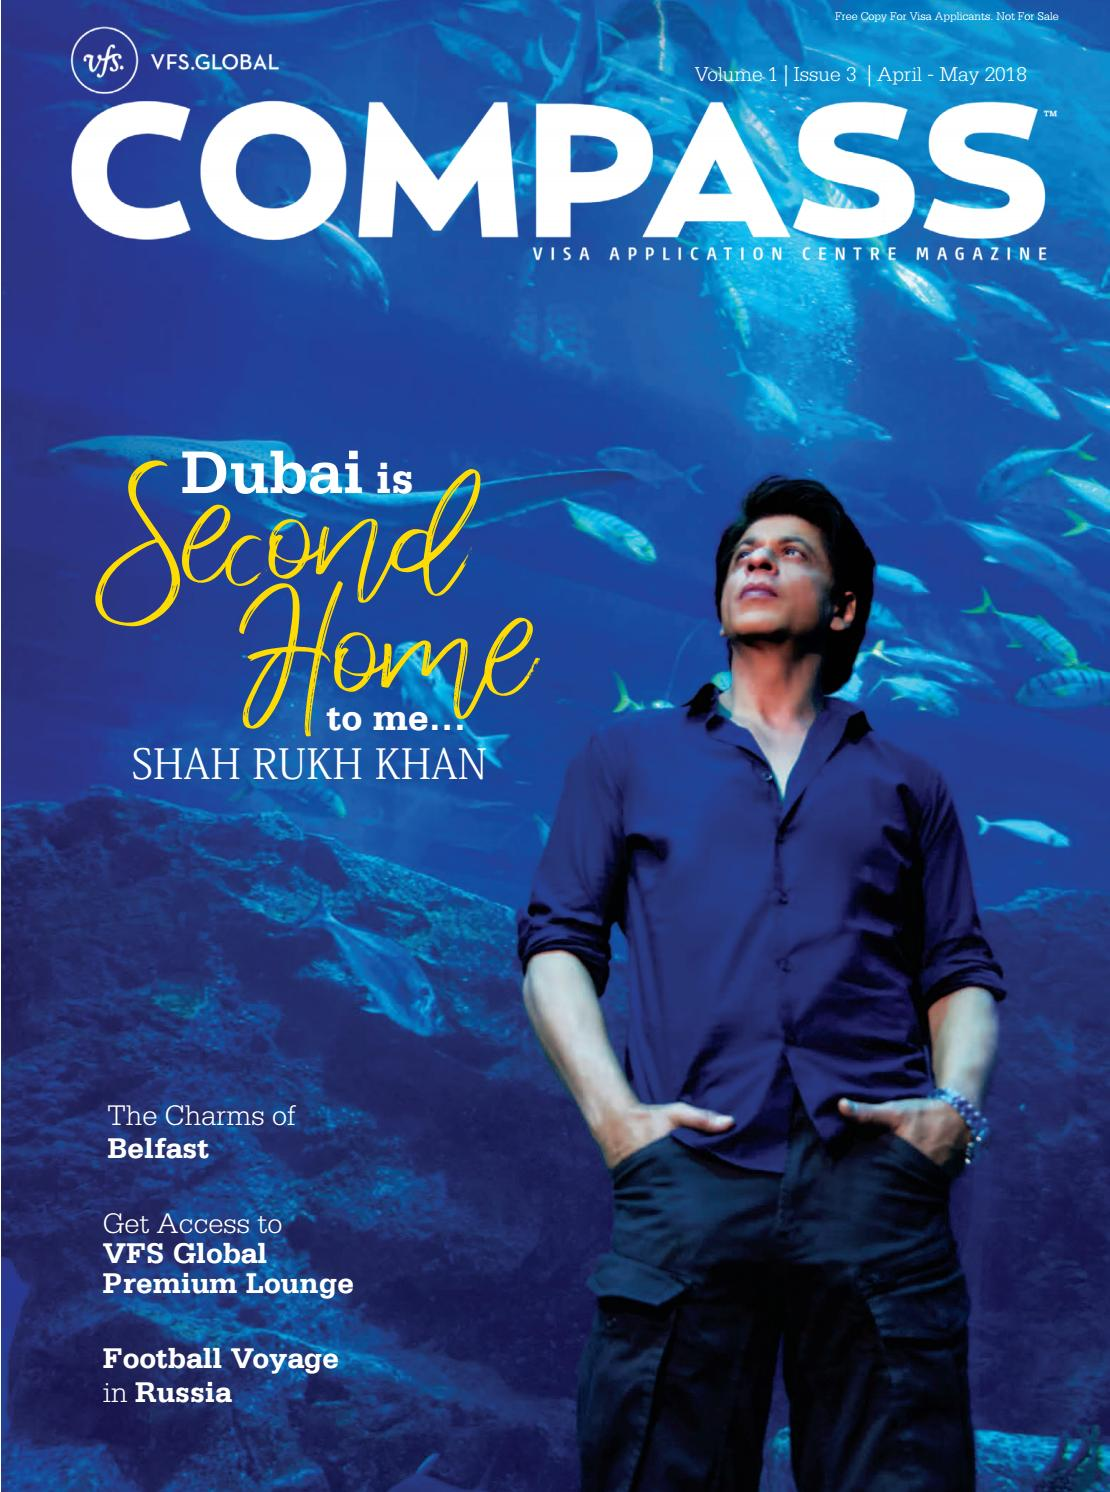 Vfs Global Compass India Edition April May 2018 By Vfsglobal Compass Issuu